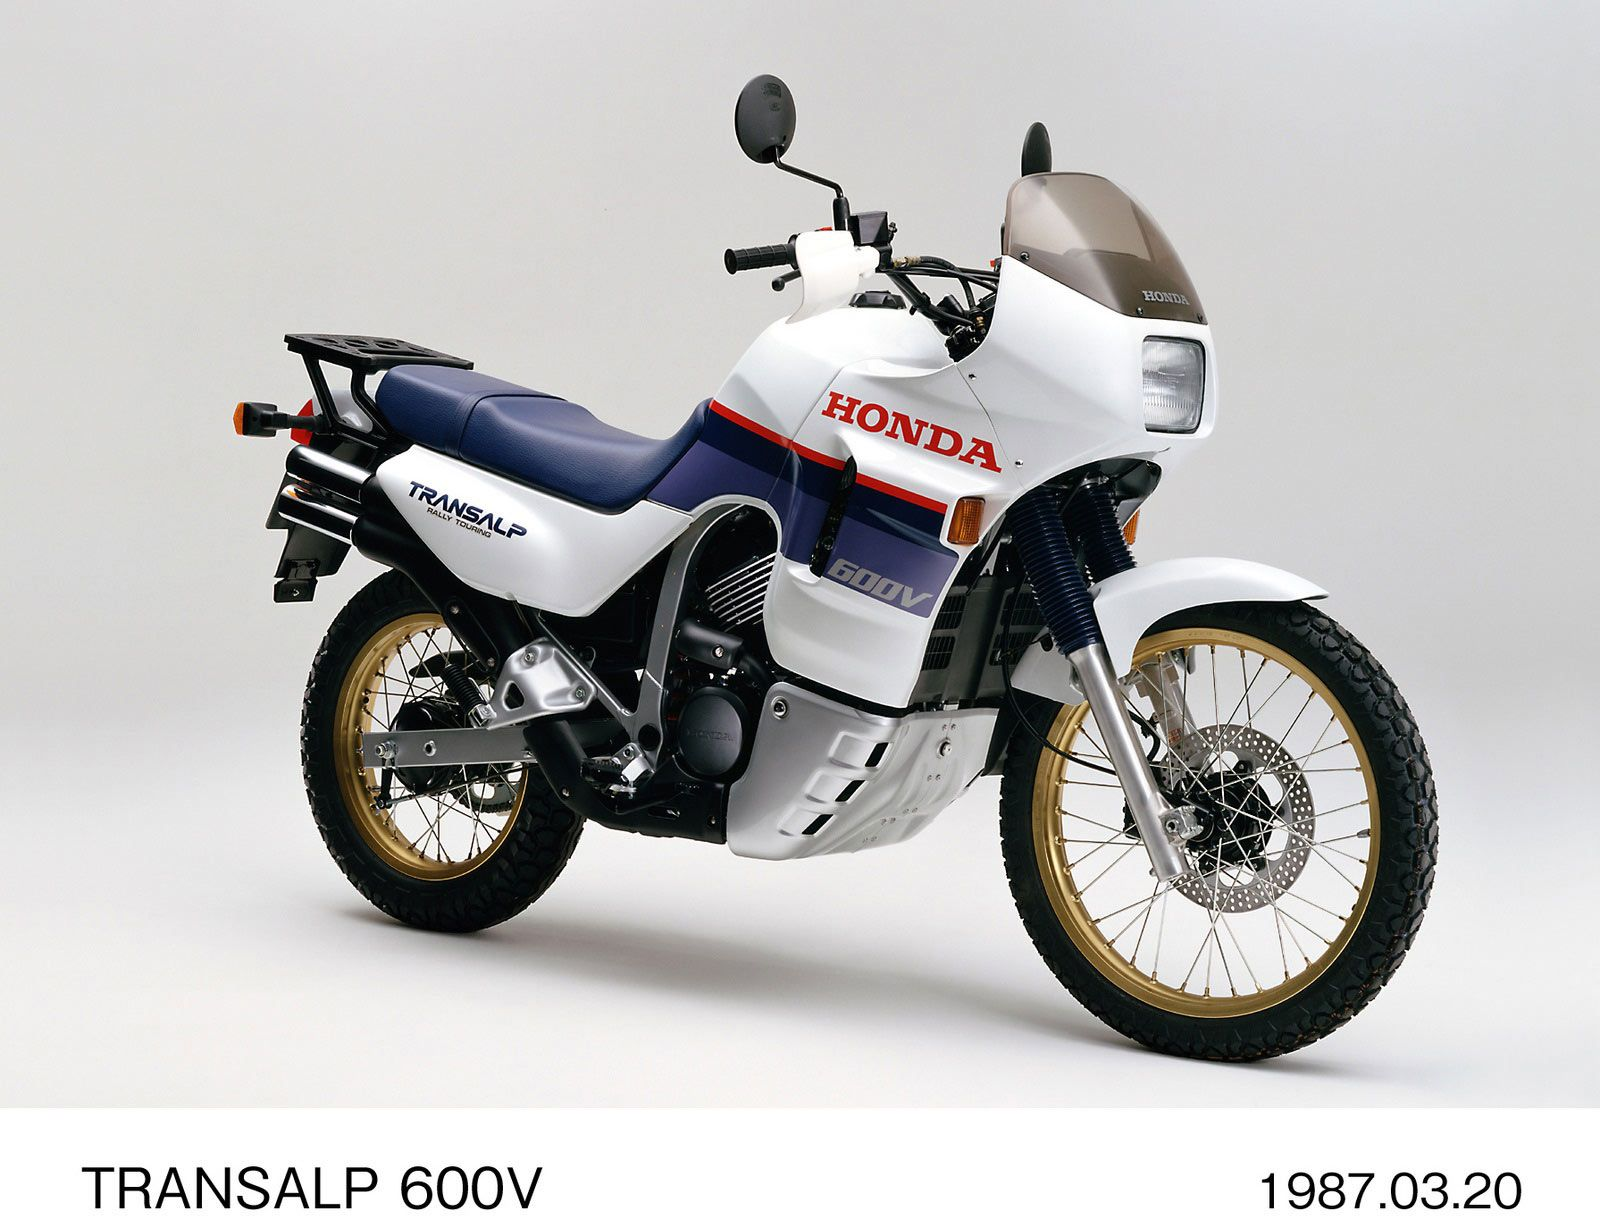 Honda's beloved middleweight is probably best known in its original 600cc form, but it may be coming back as a 750cc machine.